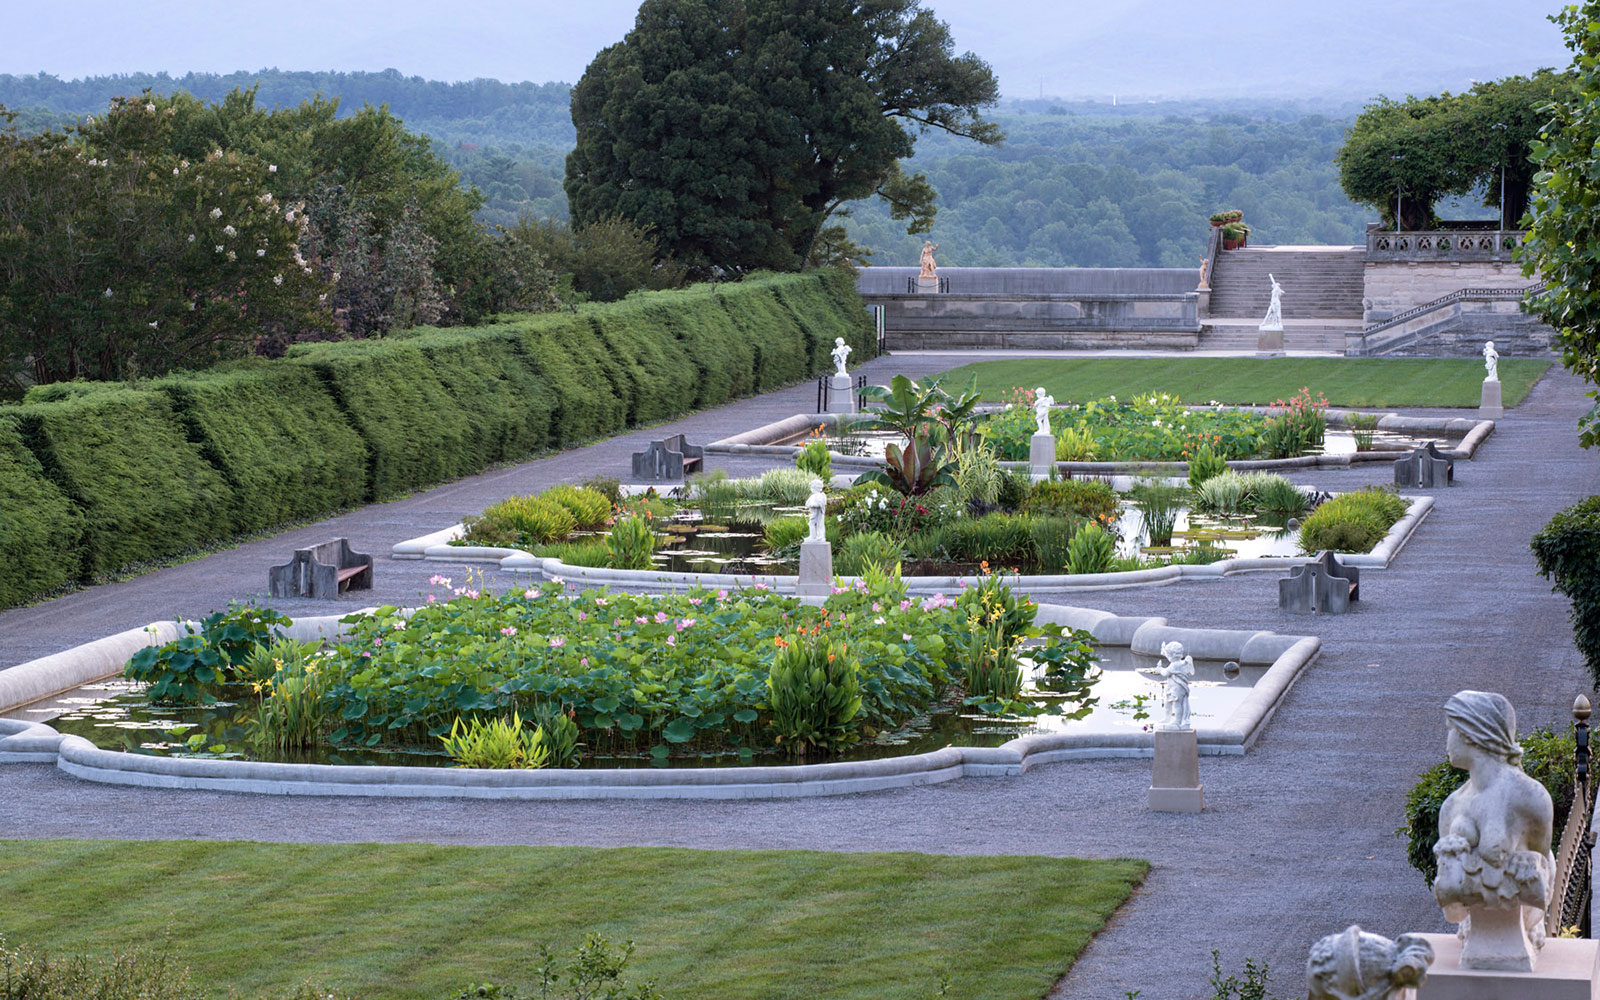 America's Most Beautiful Gardens: Biltmore, Asheville, NC